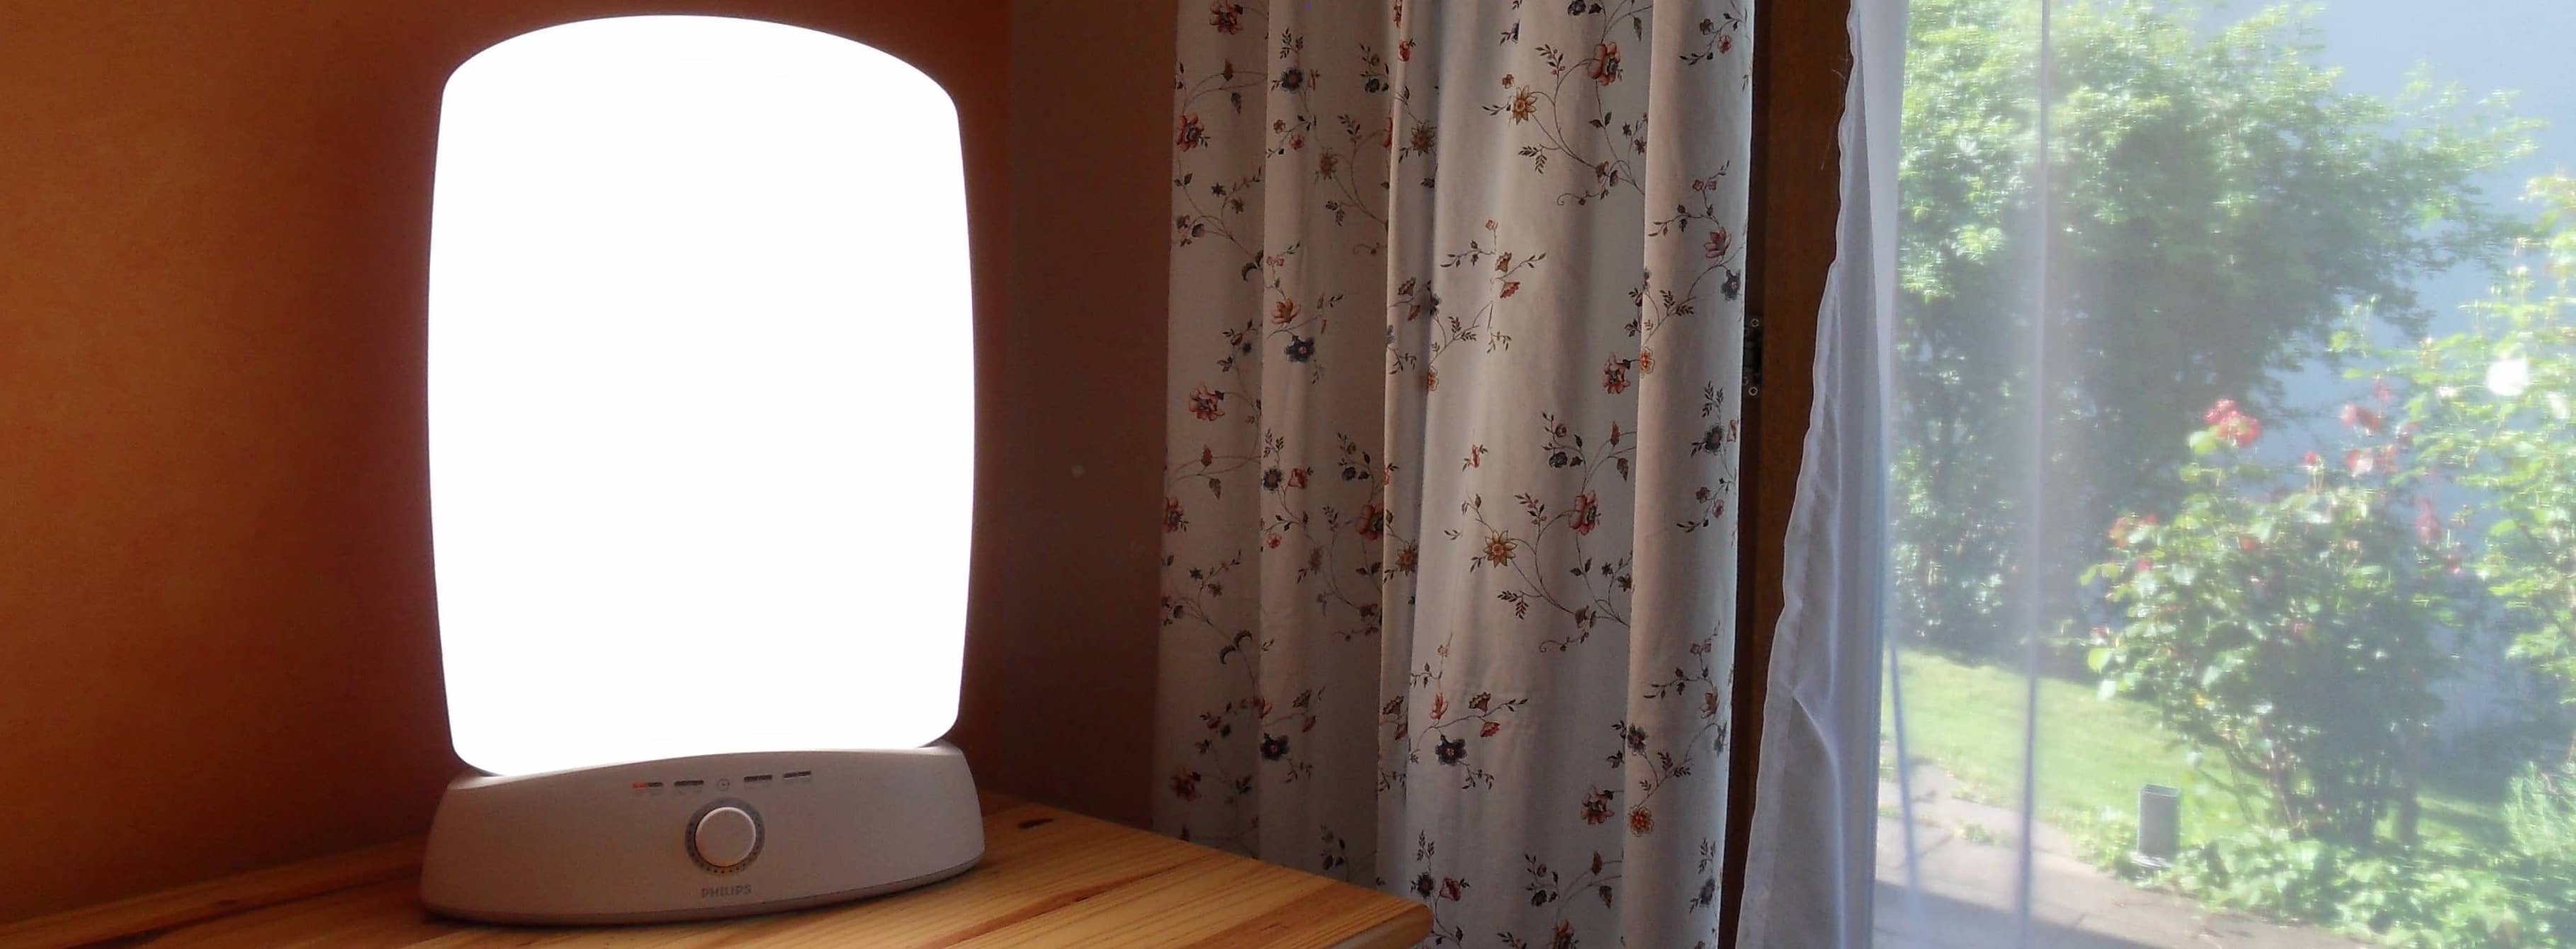 Light therapy lamp on a nightstand